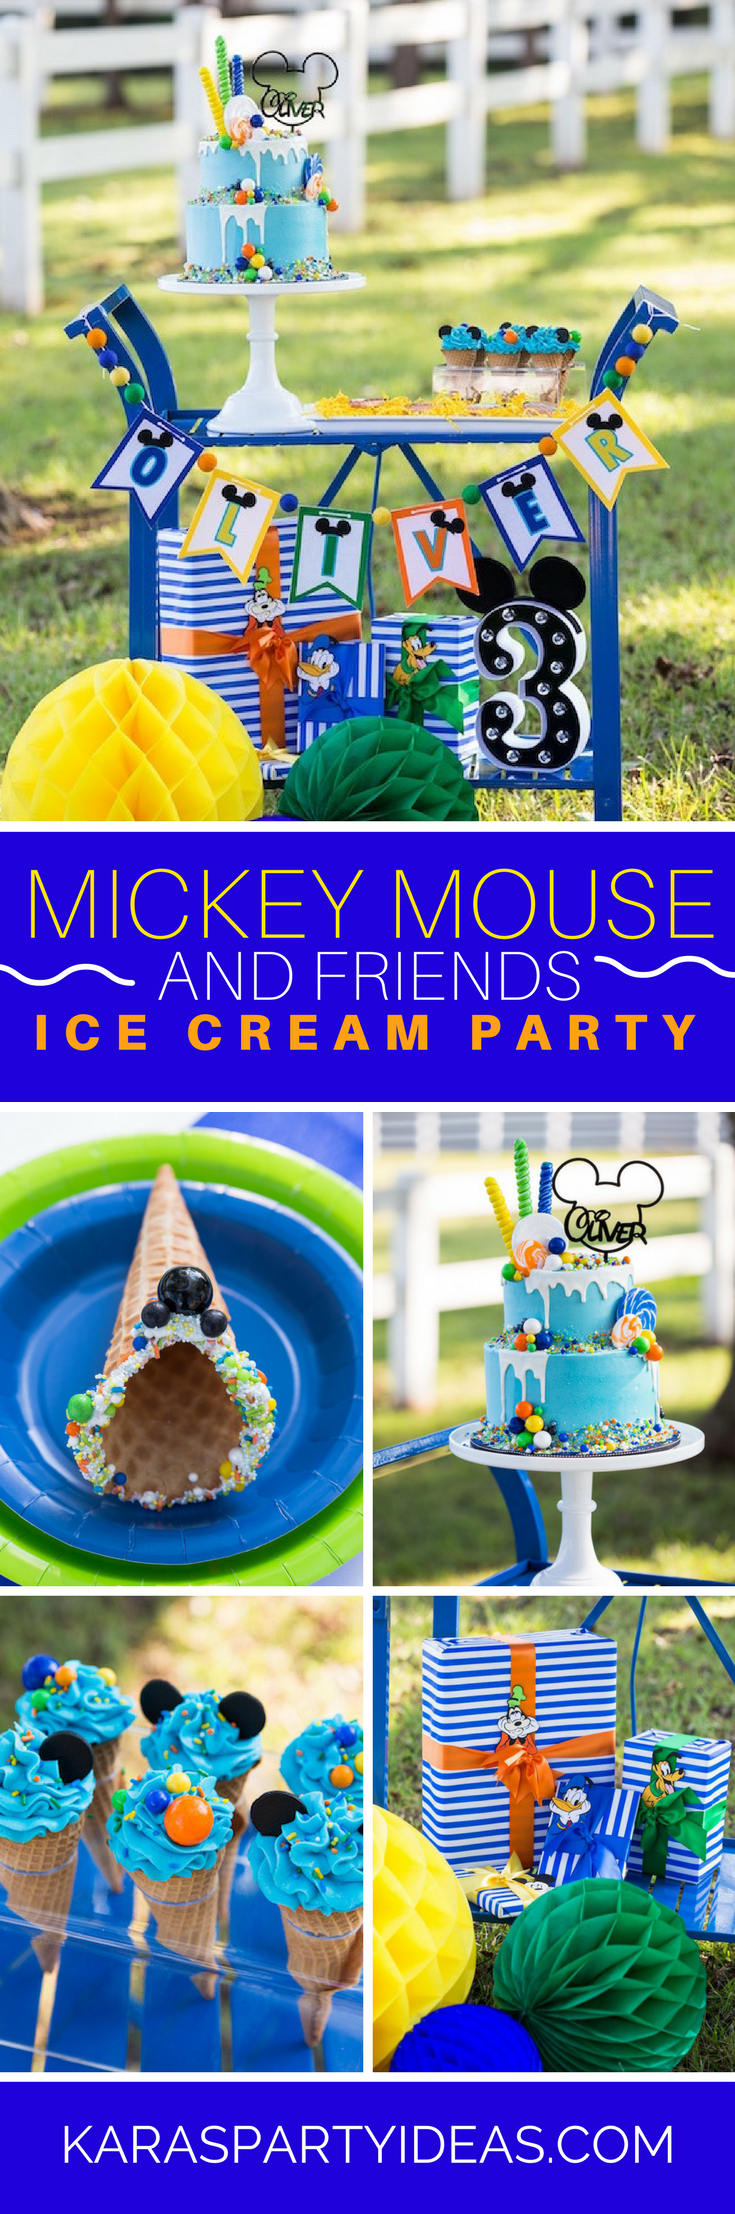 Mickey Mouse and Friends Ice Cream Party via Kara's Party Ideas - KarasPartyIdeas.com